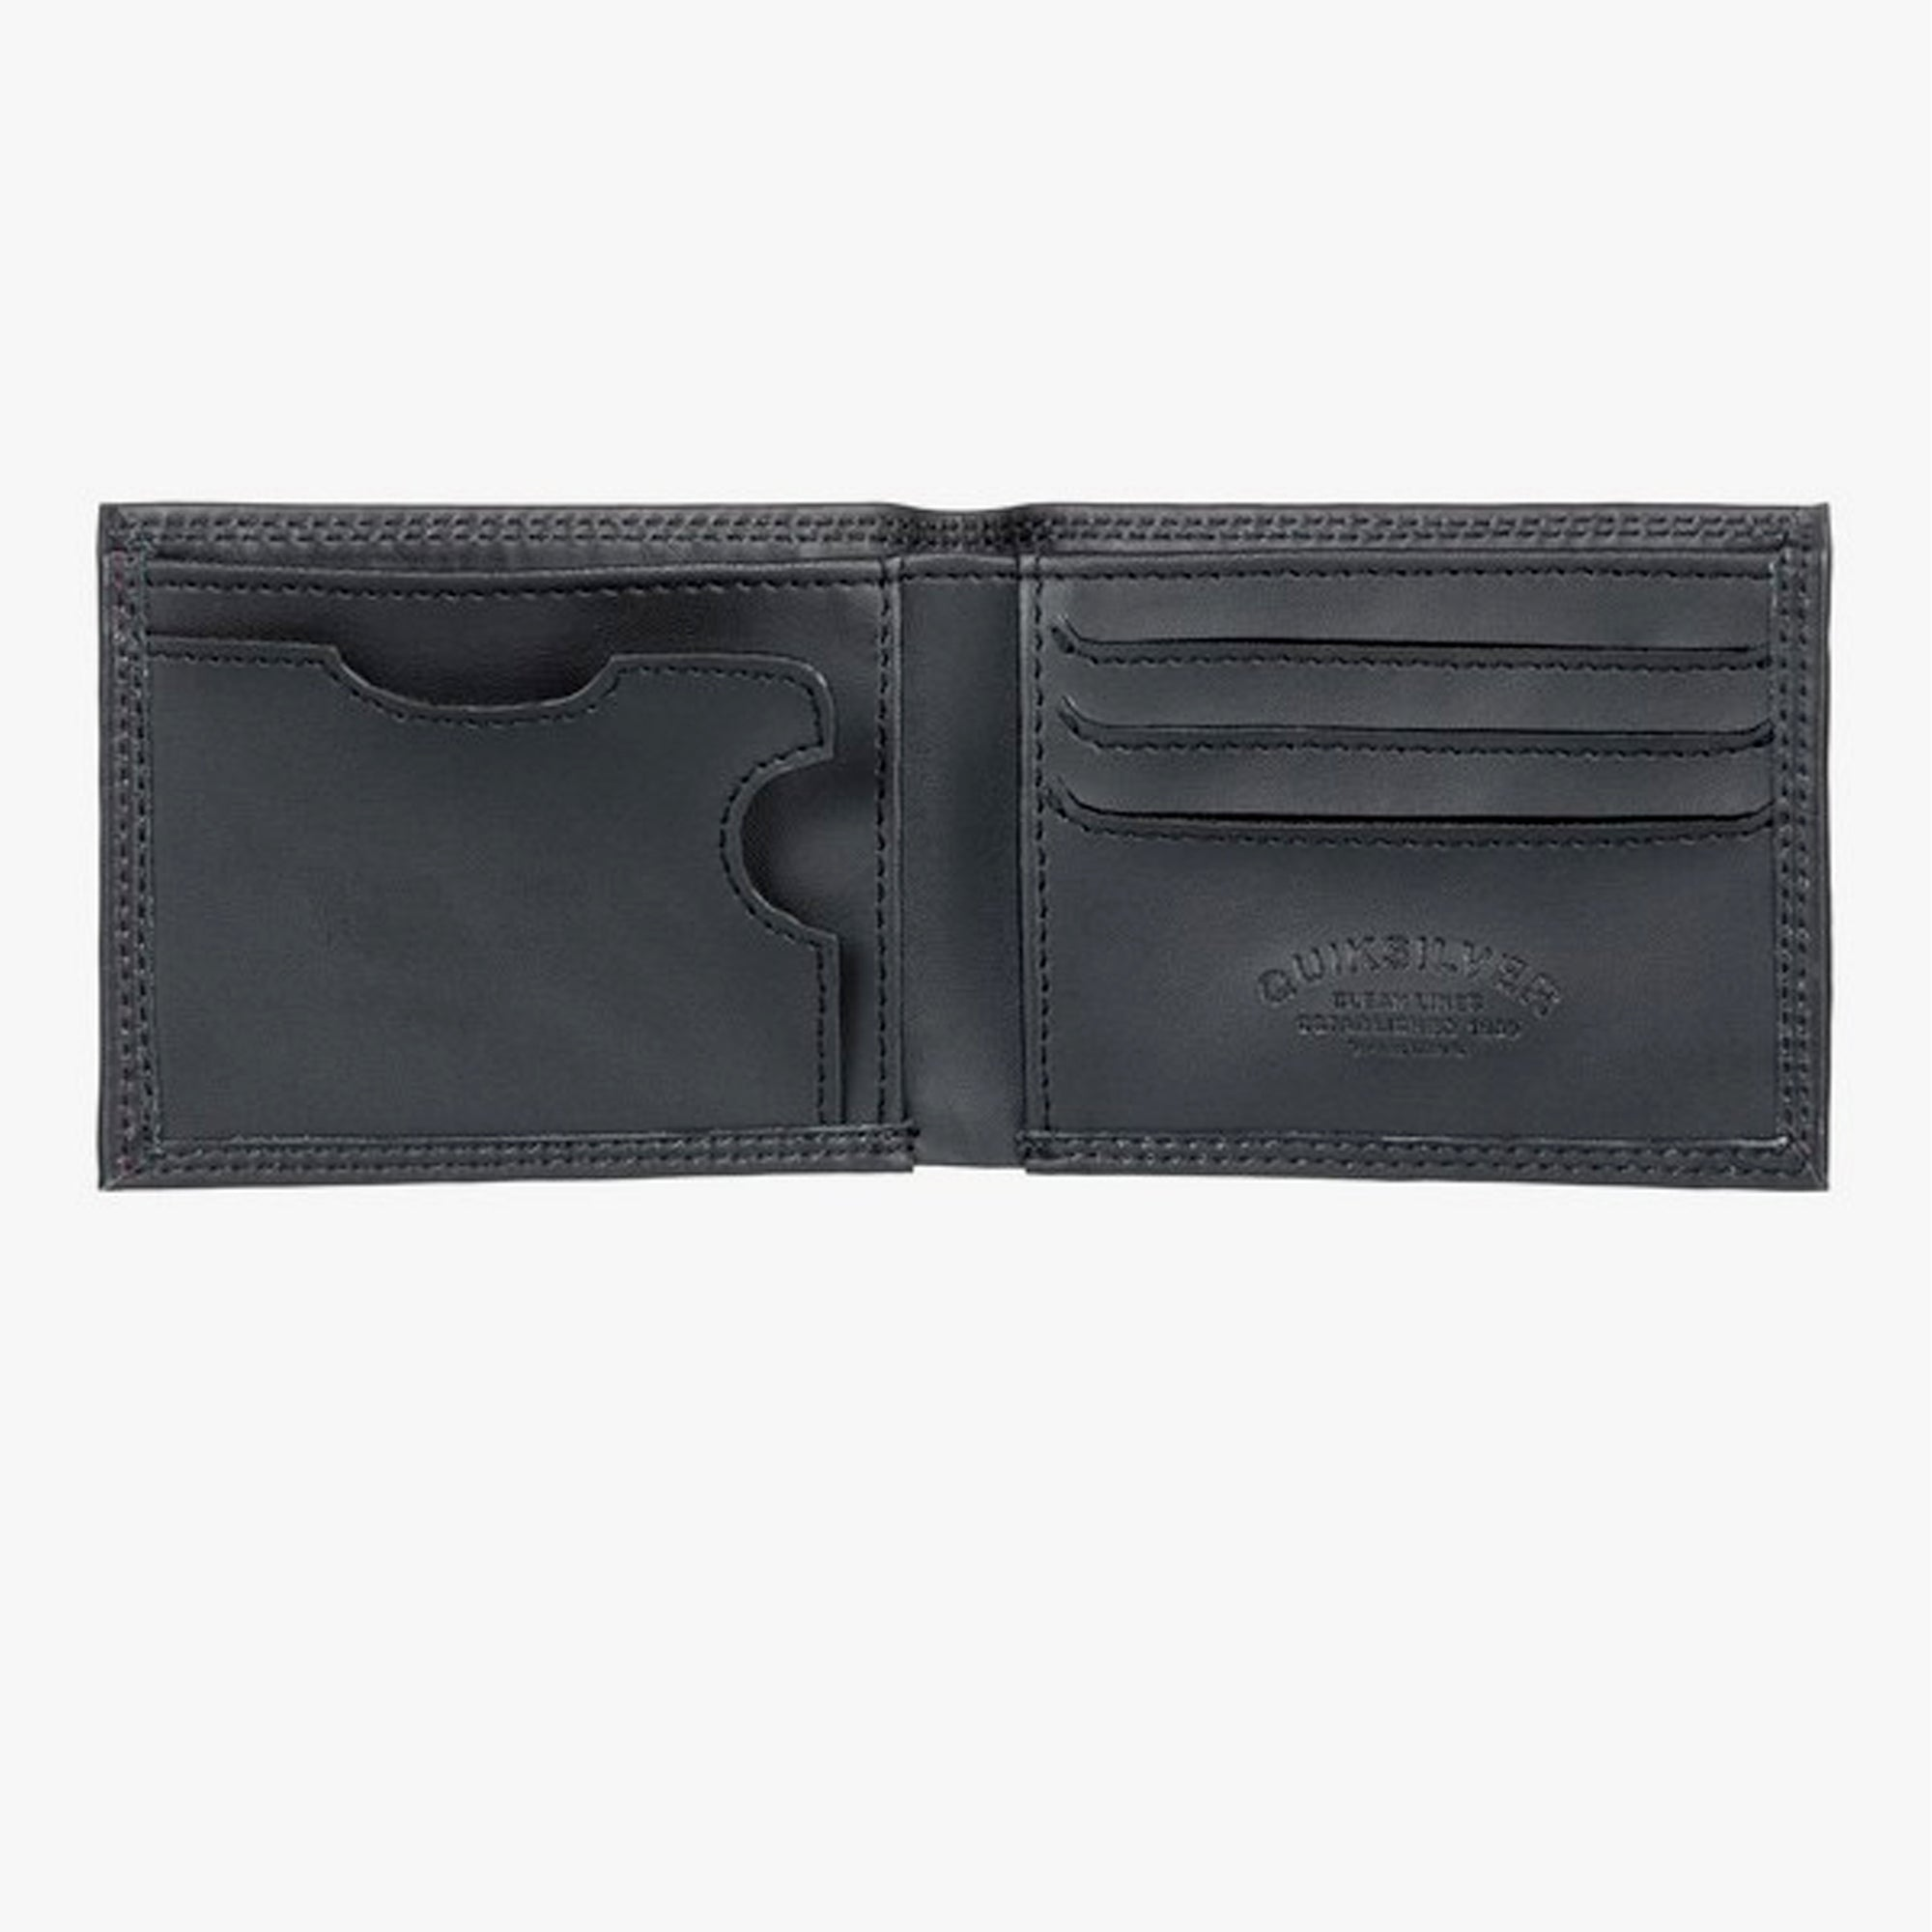 Quiksilver Mini Macbro Leather Bi-Fold Wallet